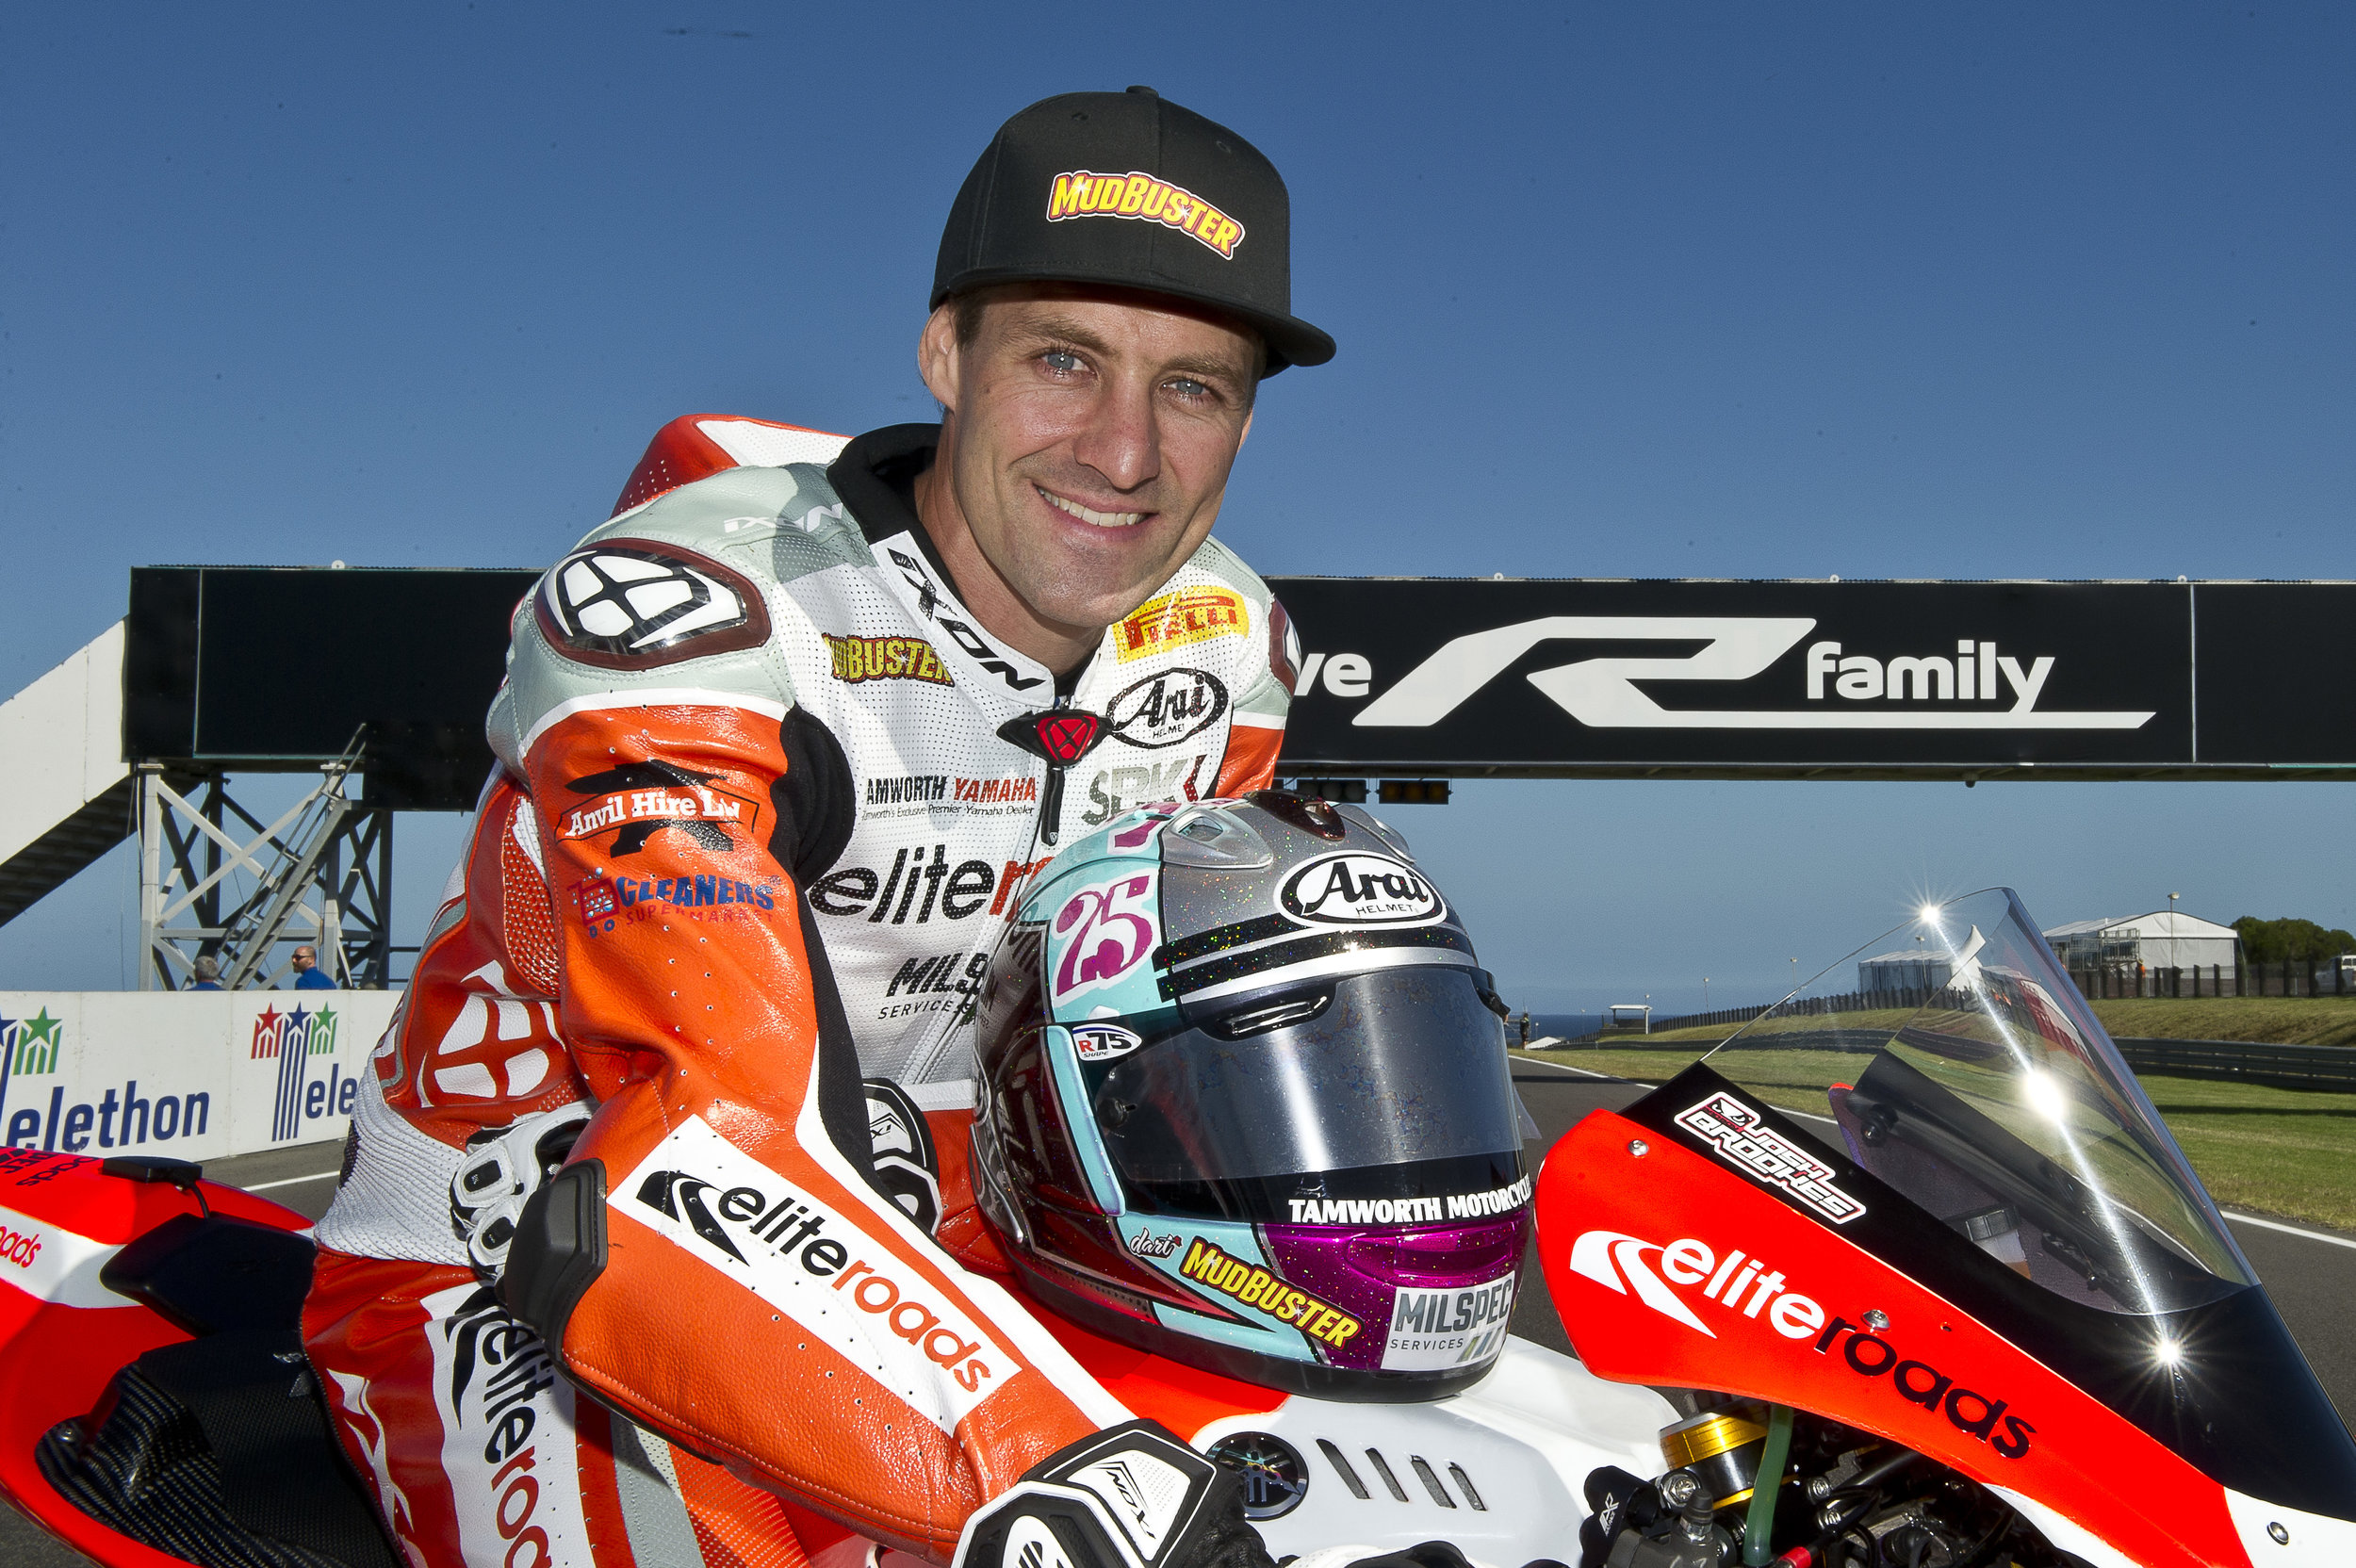 Josh Brookes at Phillip Island with the wildcard Yamaha he'll run this we (3)